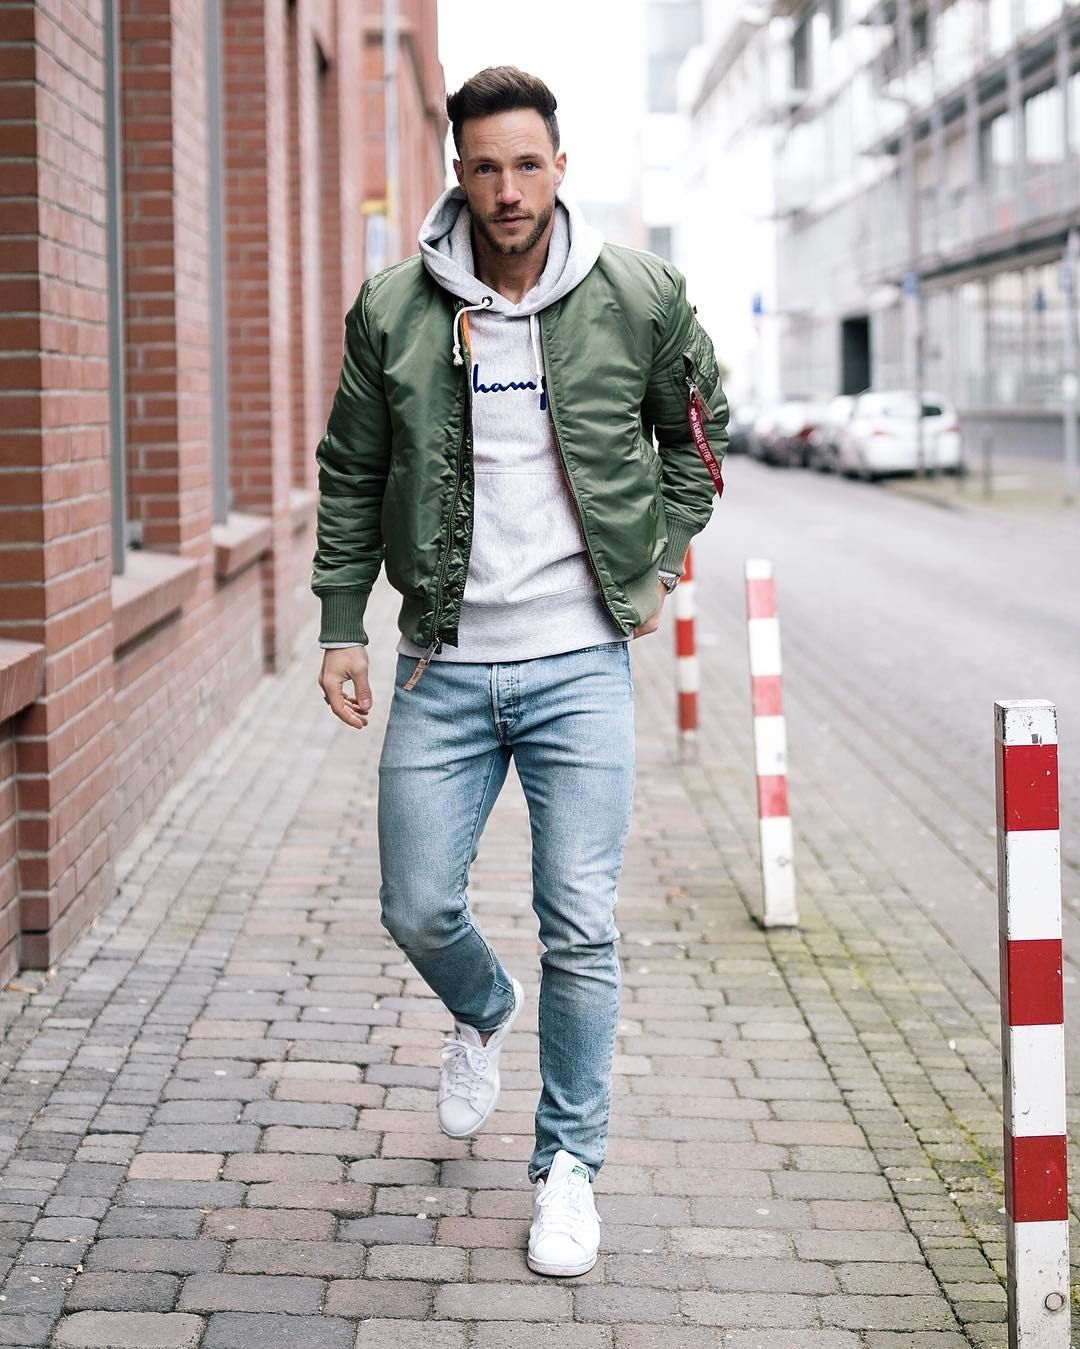 efe7b5f6c75 Pin by Touch.style on Men outfits   Casual   Men styles in 2019 ...